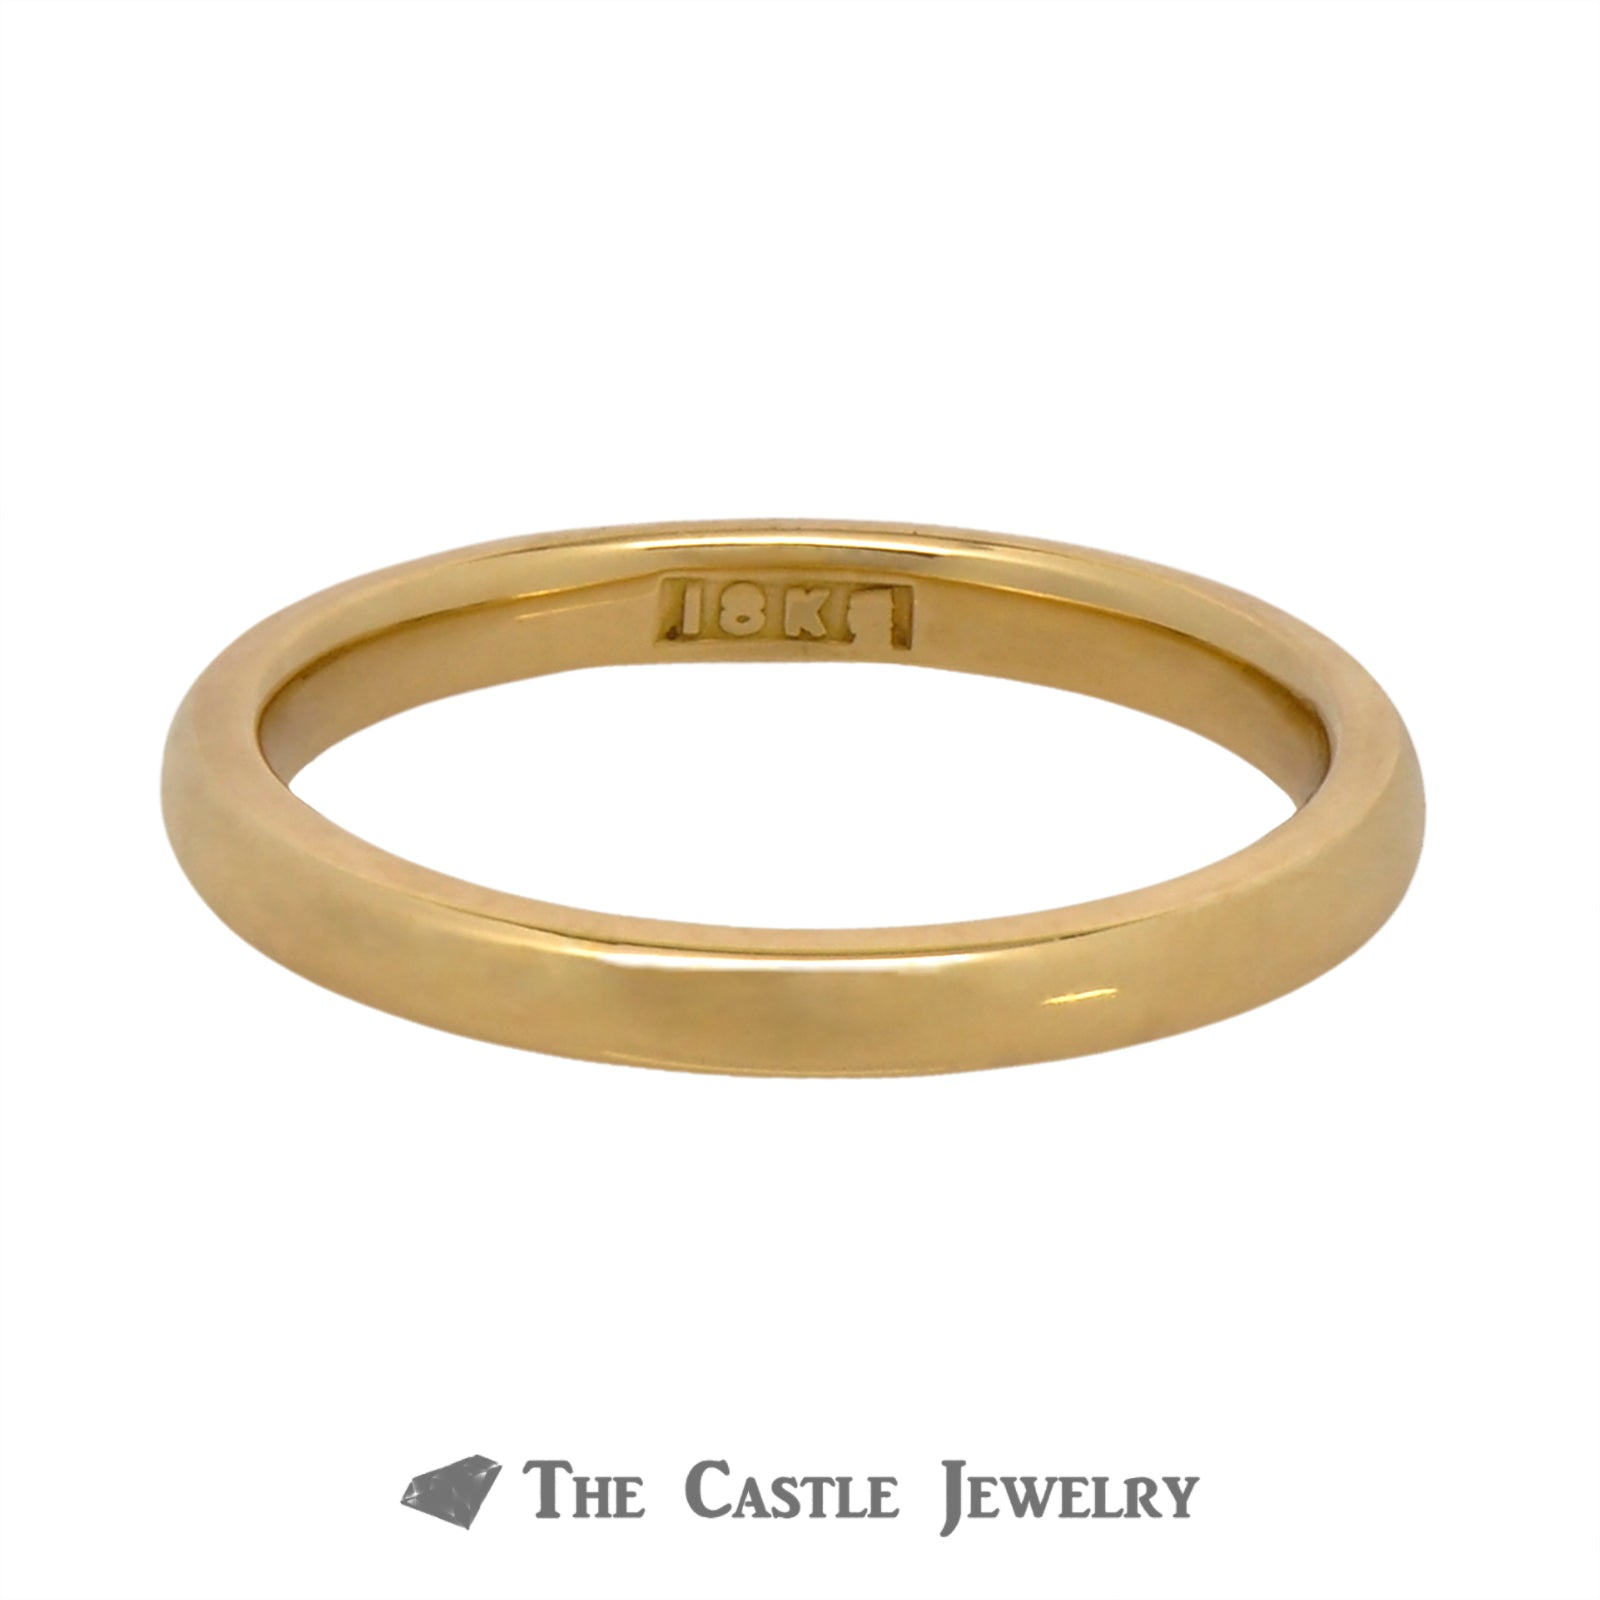 Polished 2.4mm Wedding Band Crafted in 18k Yellow Gold